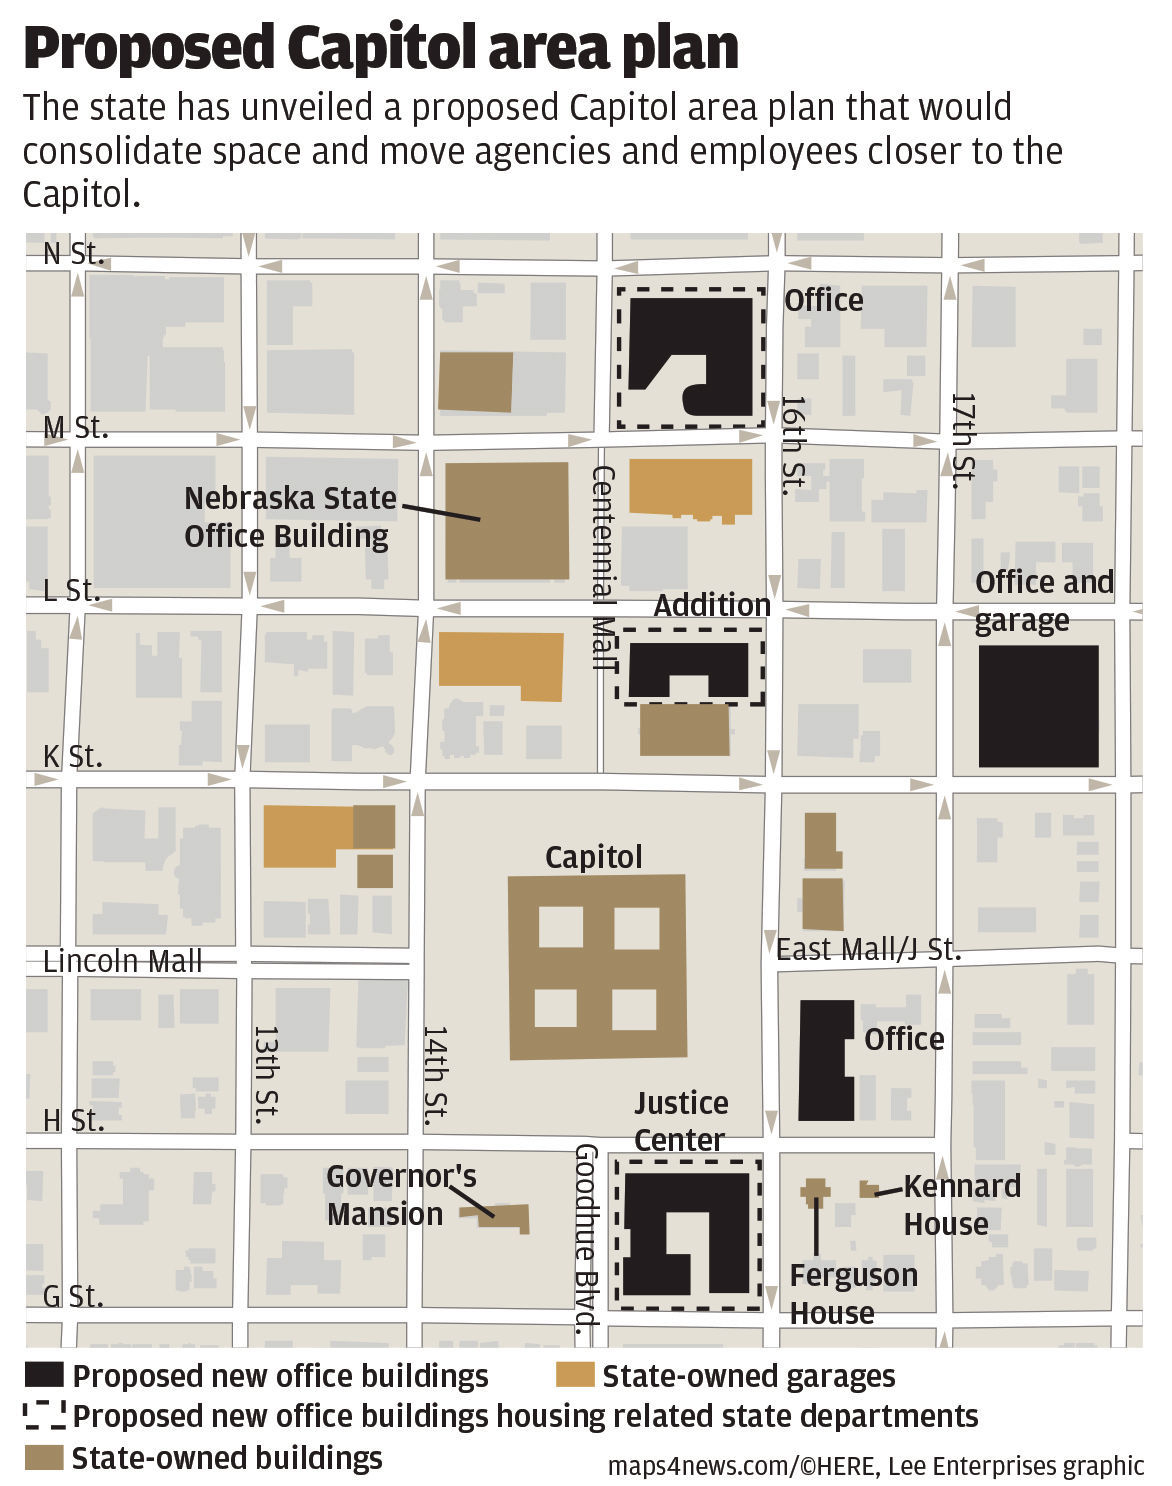 Proposed Capitol area plan